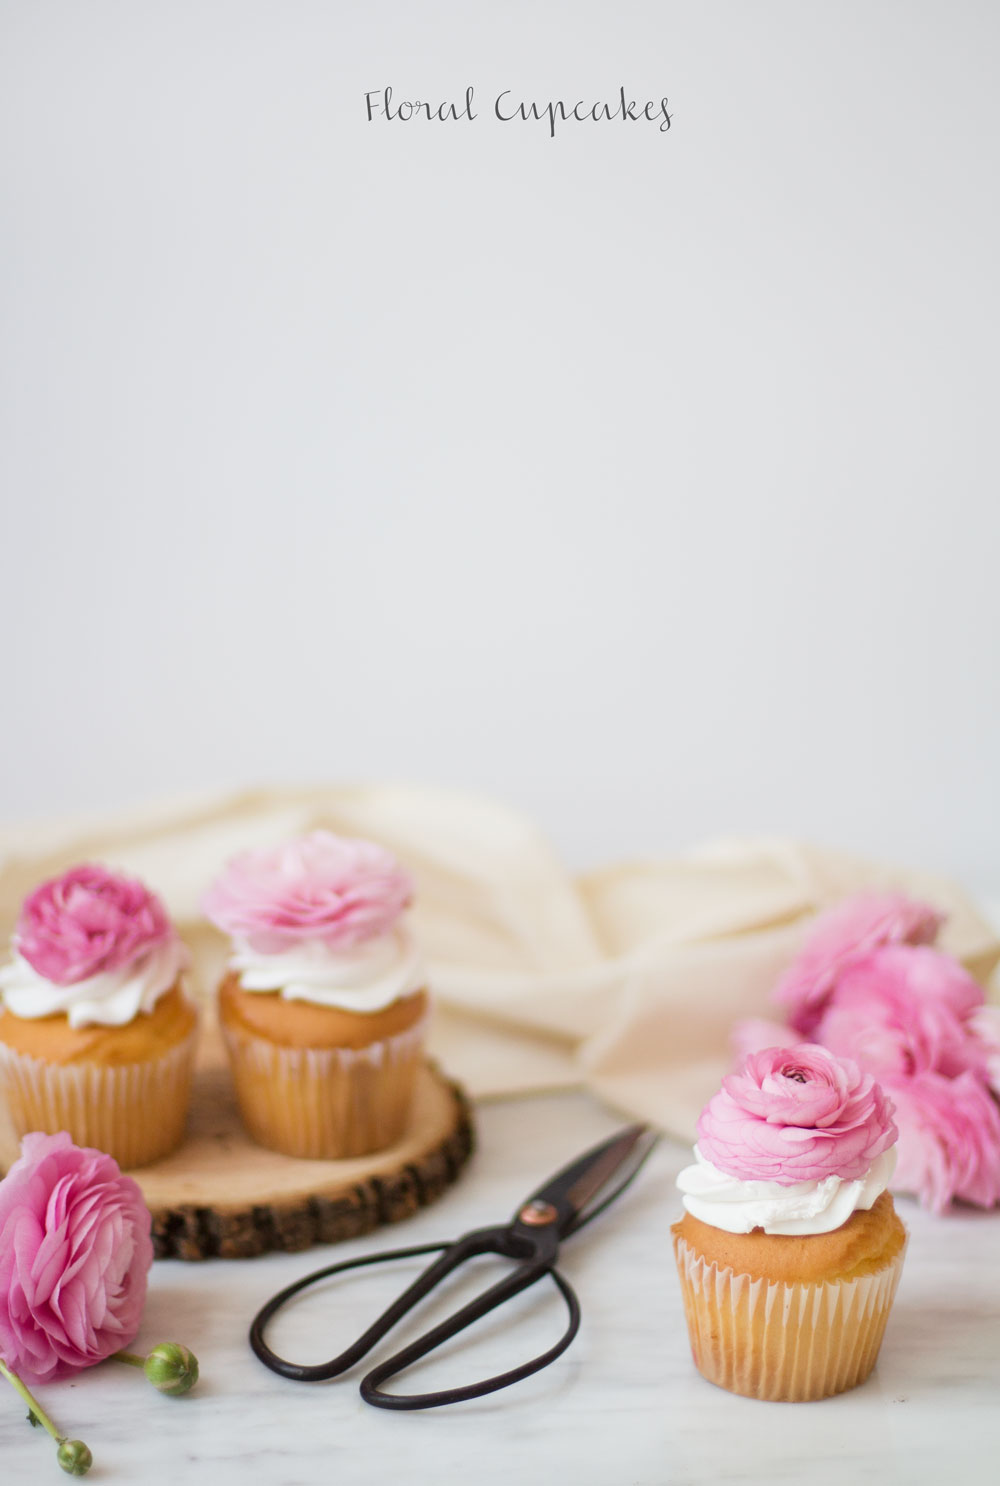 floral-cupcakes-1